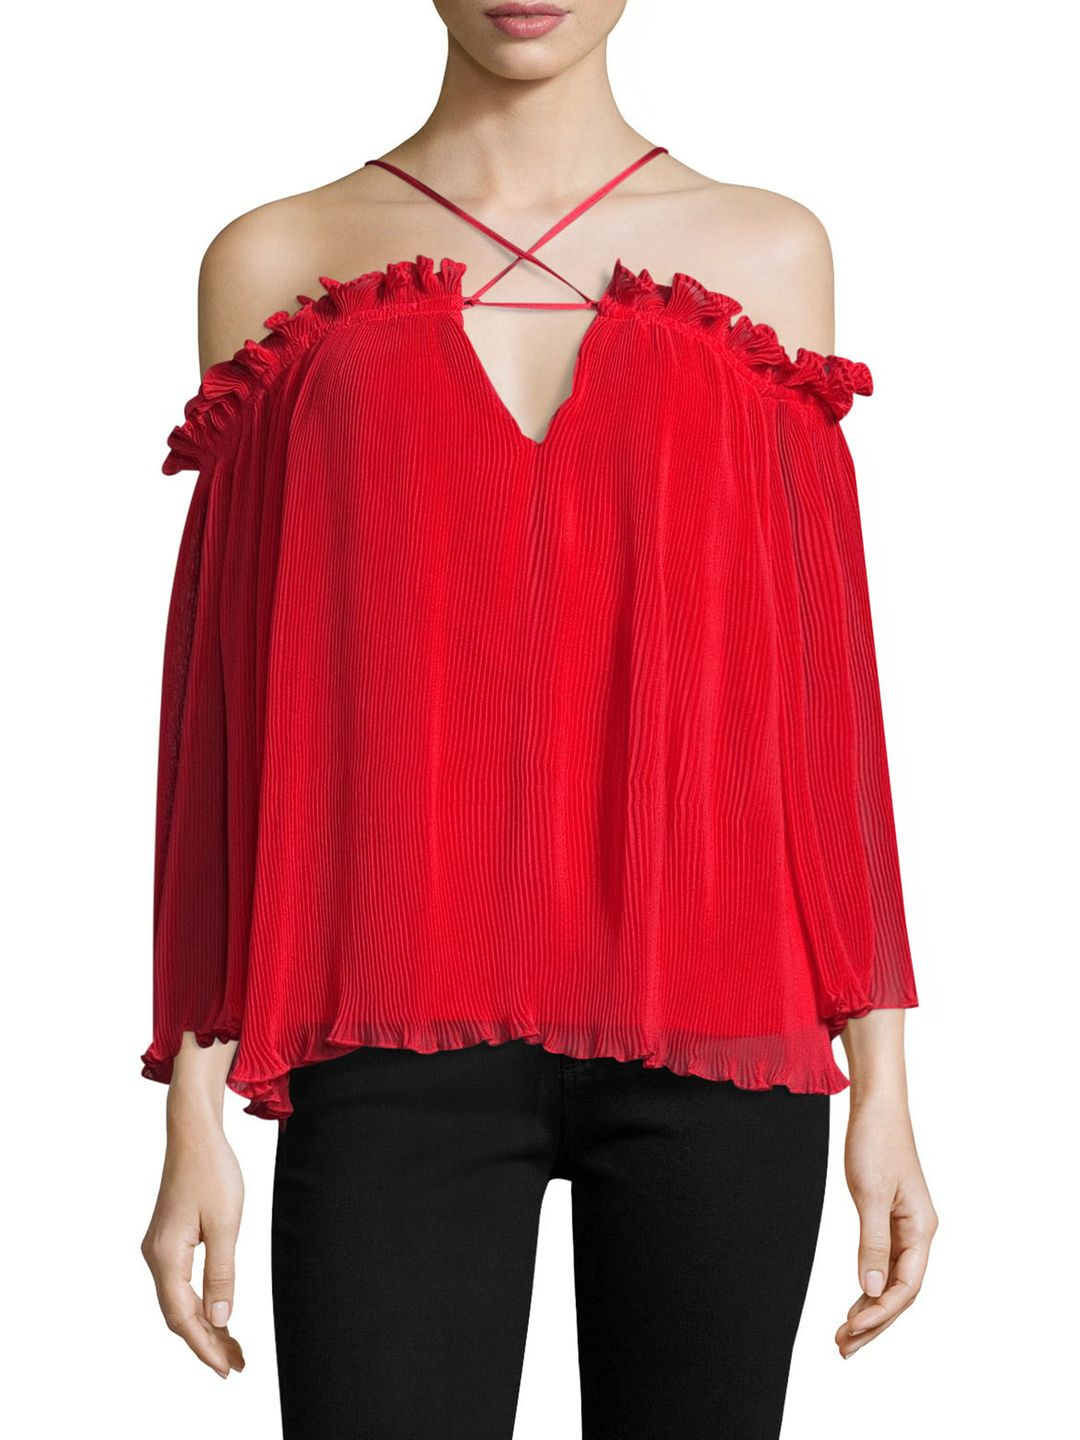 What Do You Mean Elasticized Off The Shoulder Top In Red Fashion Clothes Women Womens Fashion Edgy Edgy Fashion